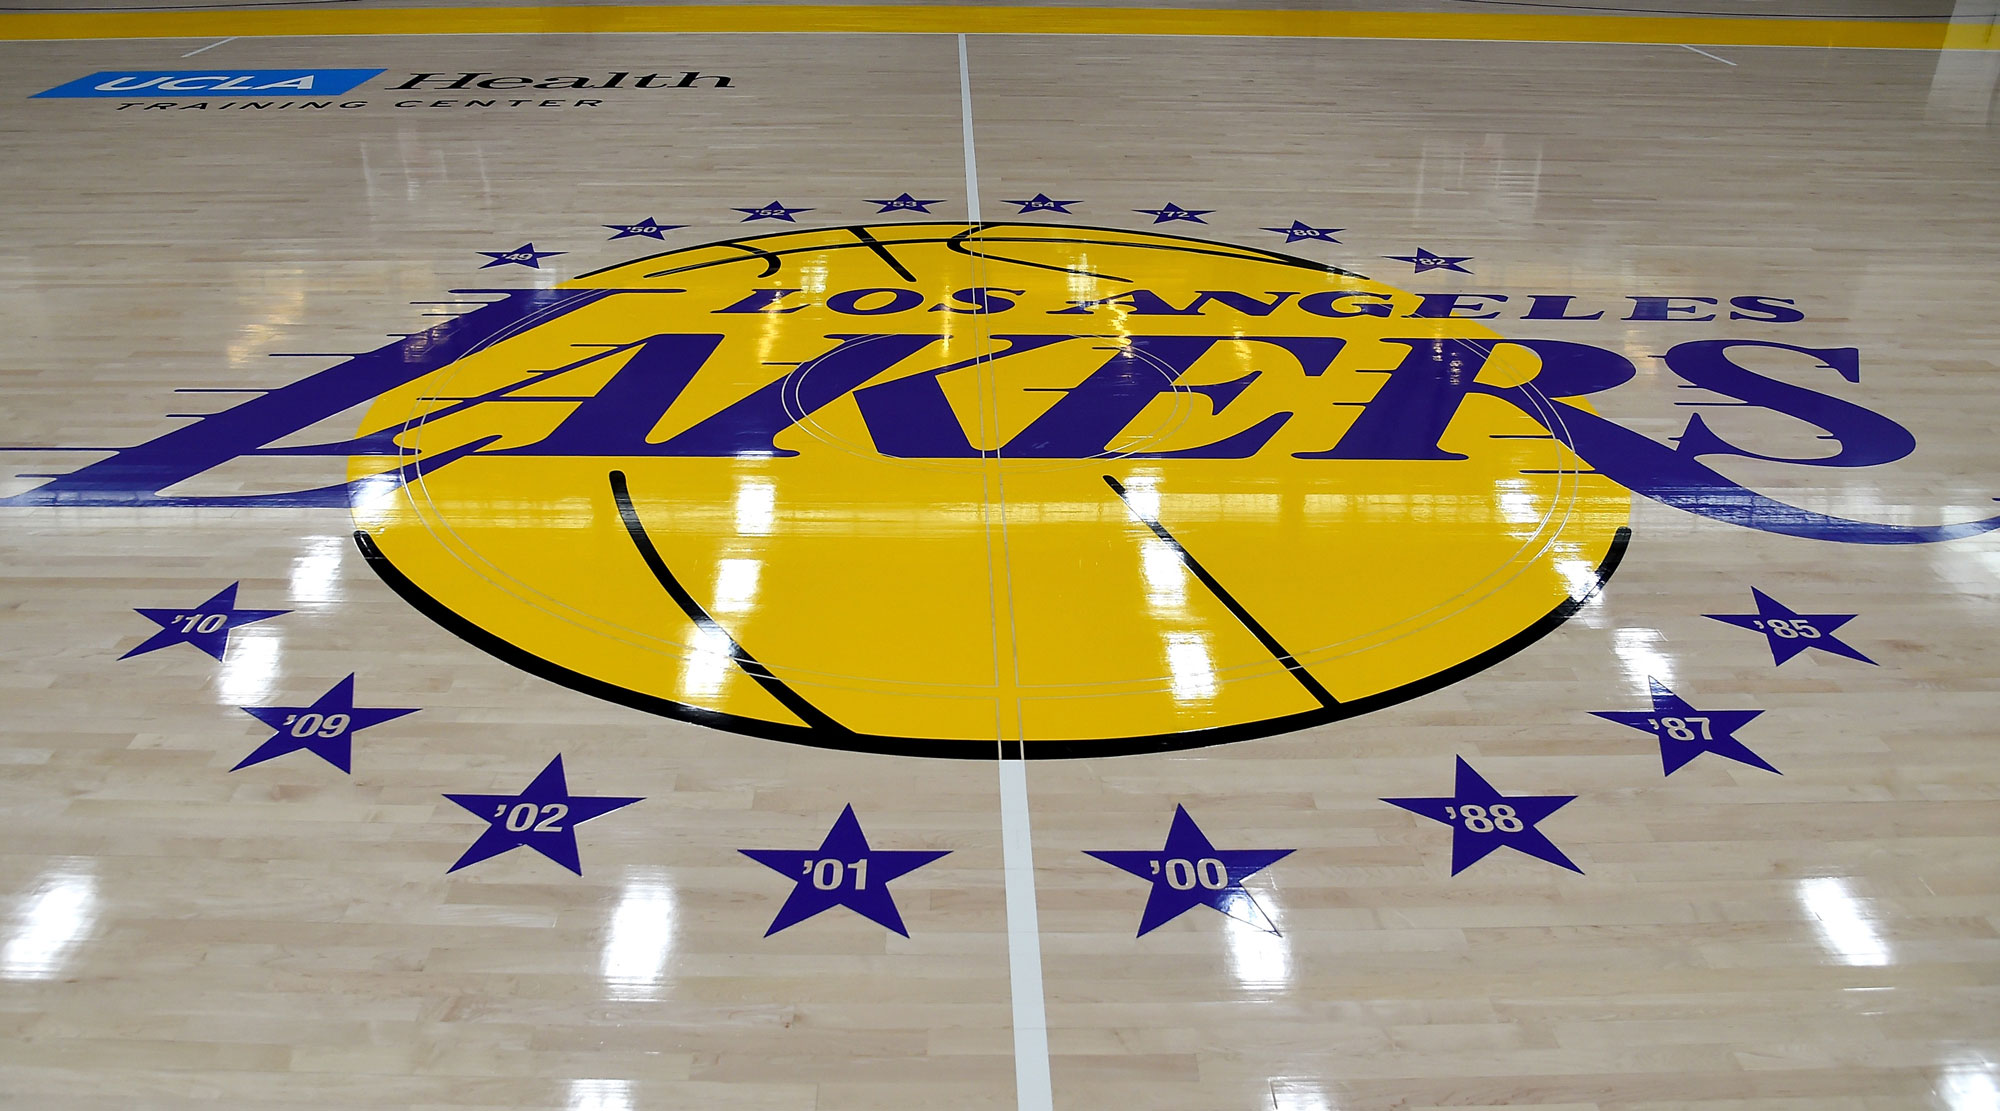 The Los Angeles Lakers logo is shown on the floor ofthe UCLA Health Training Center on May 29, 2018 in Los Angeles.